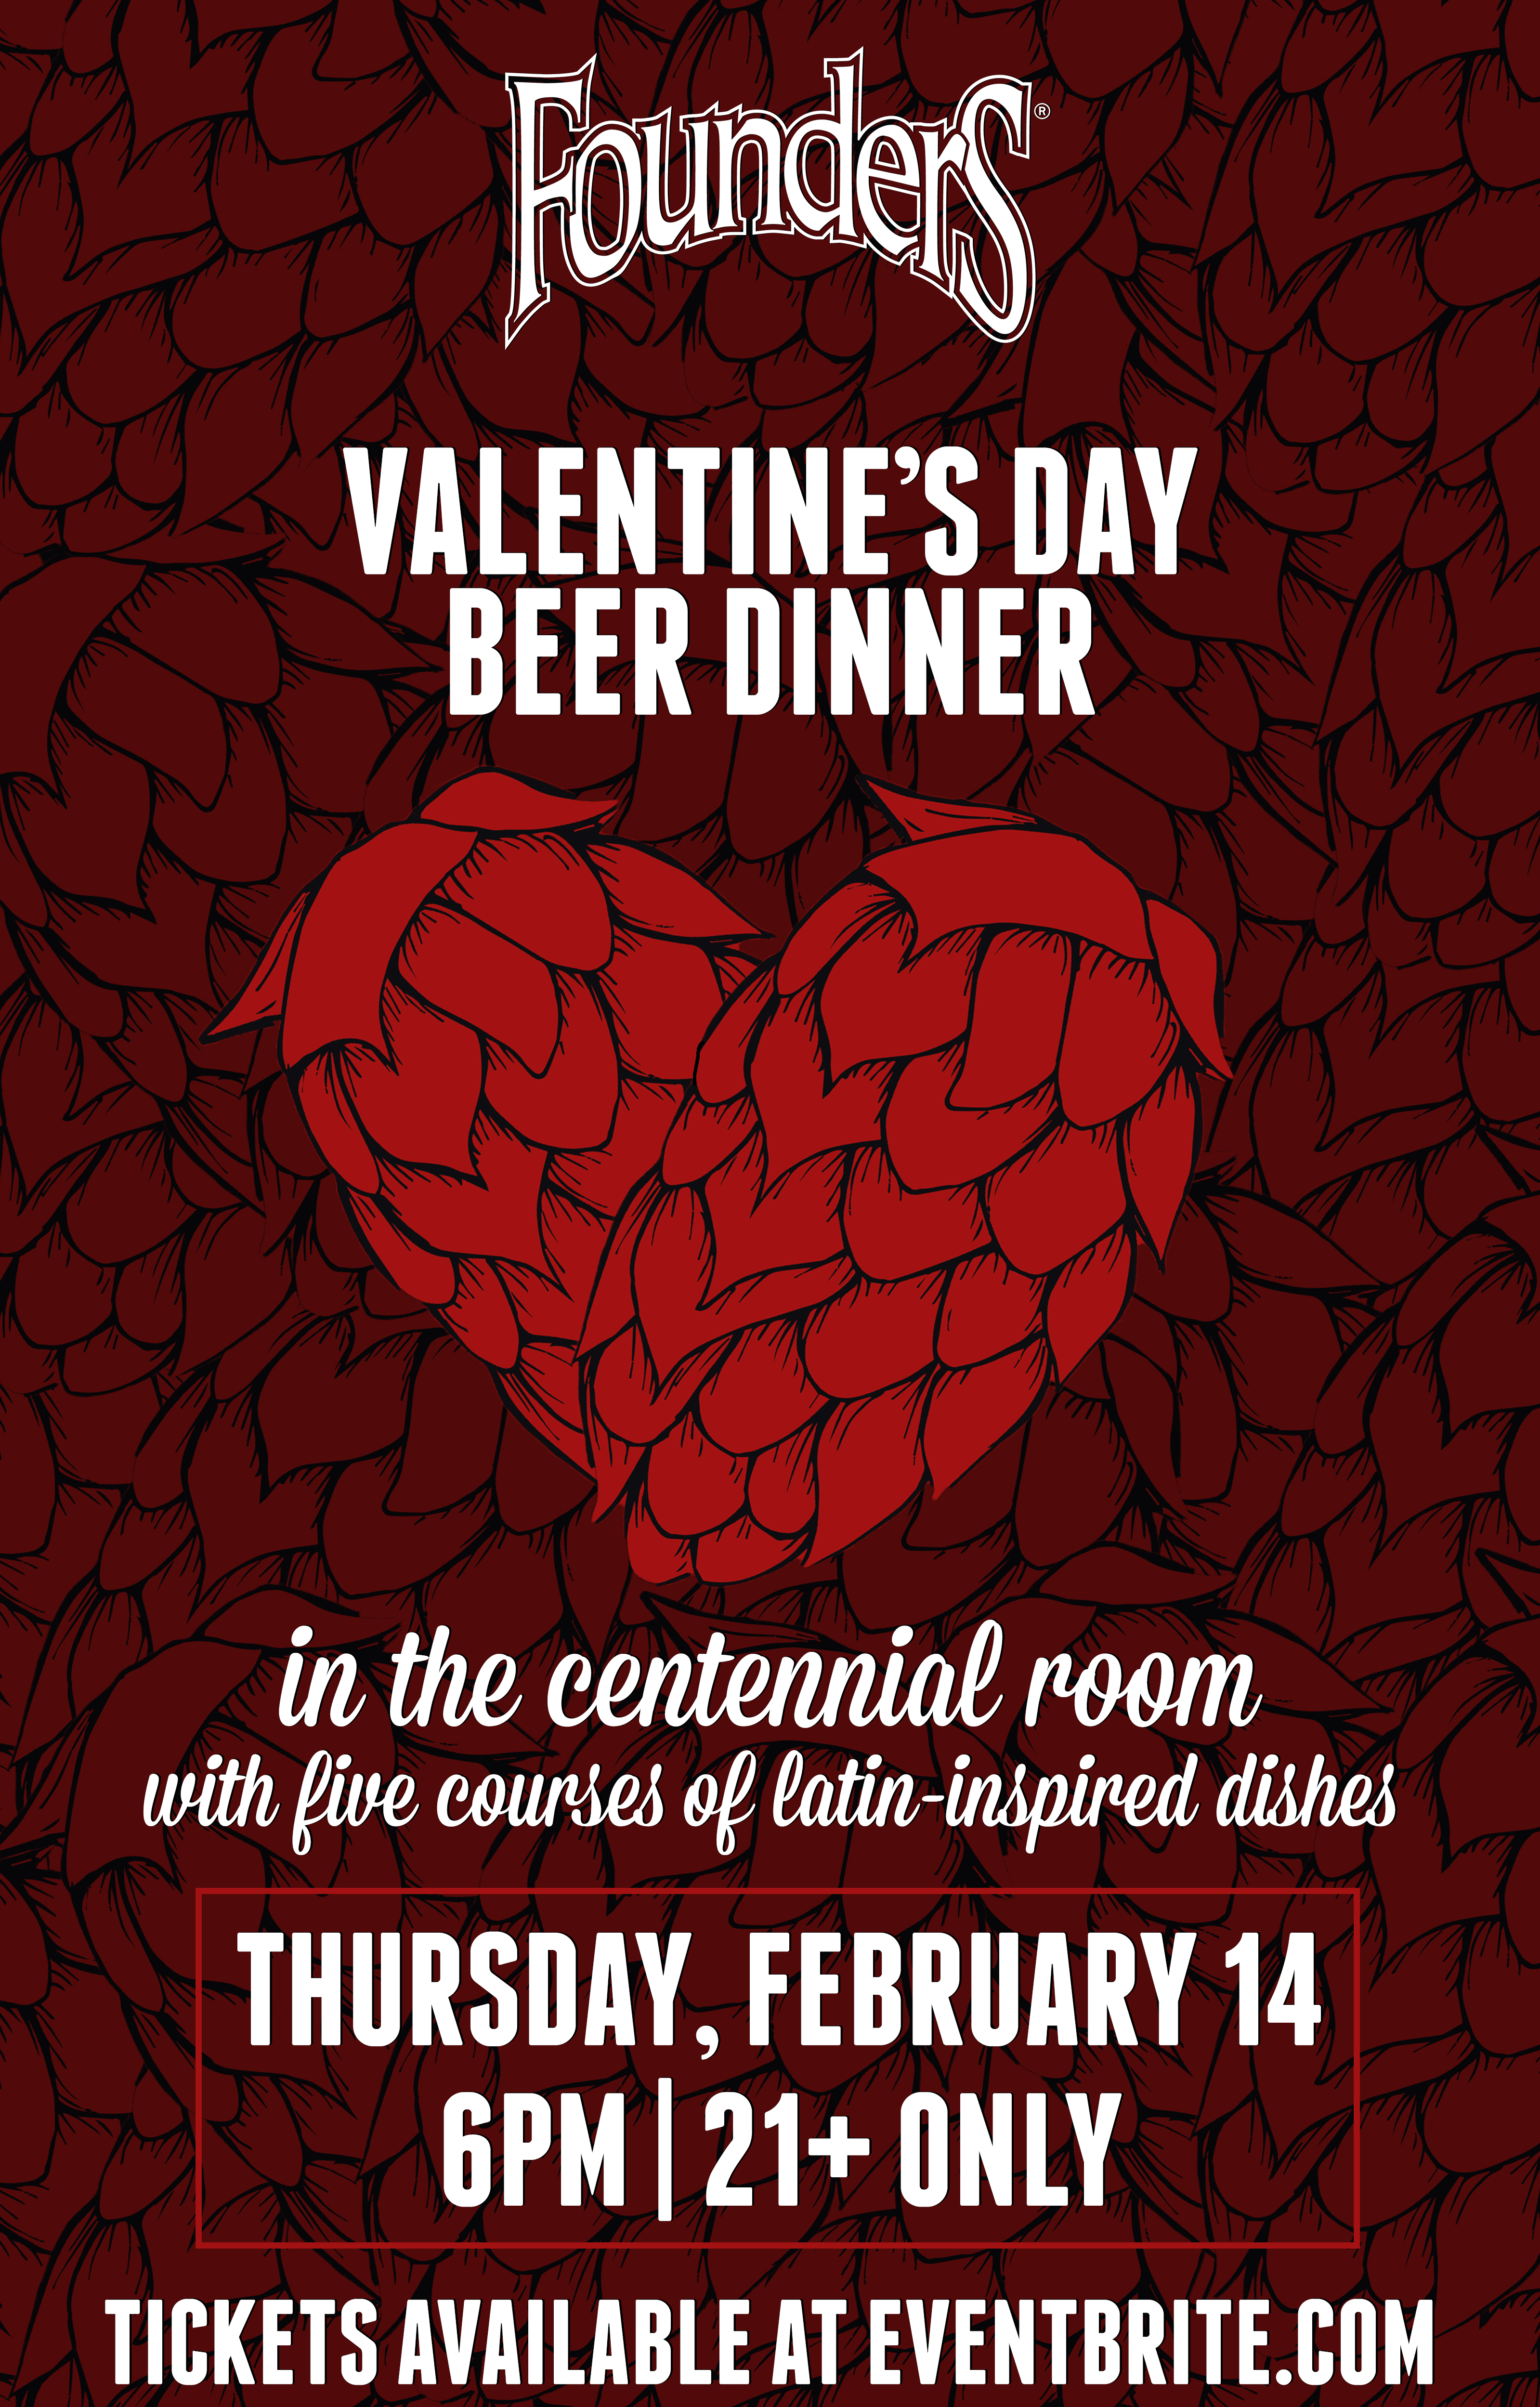 Founders Valentine's Day Beer Dinner